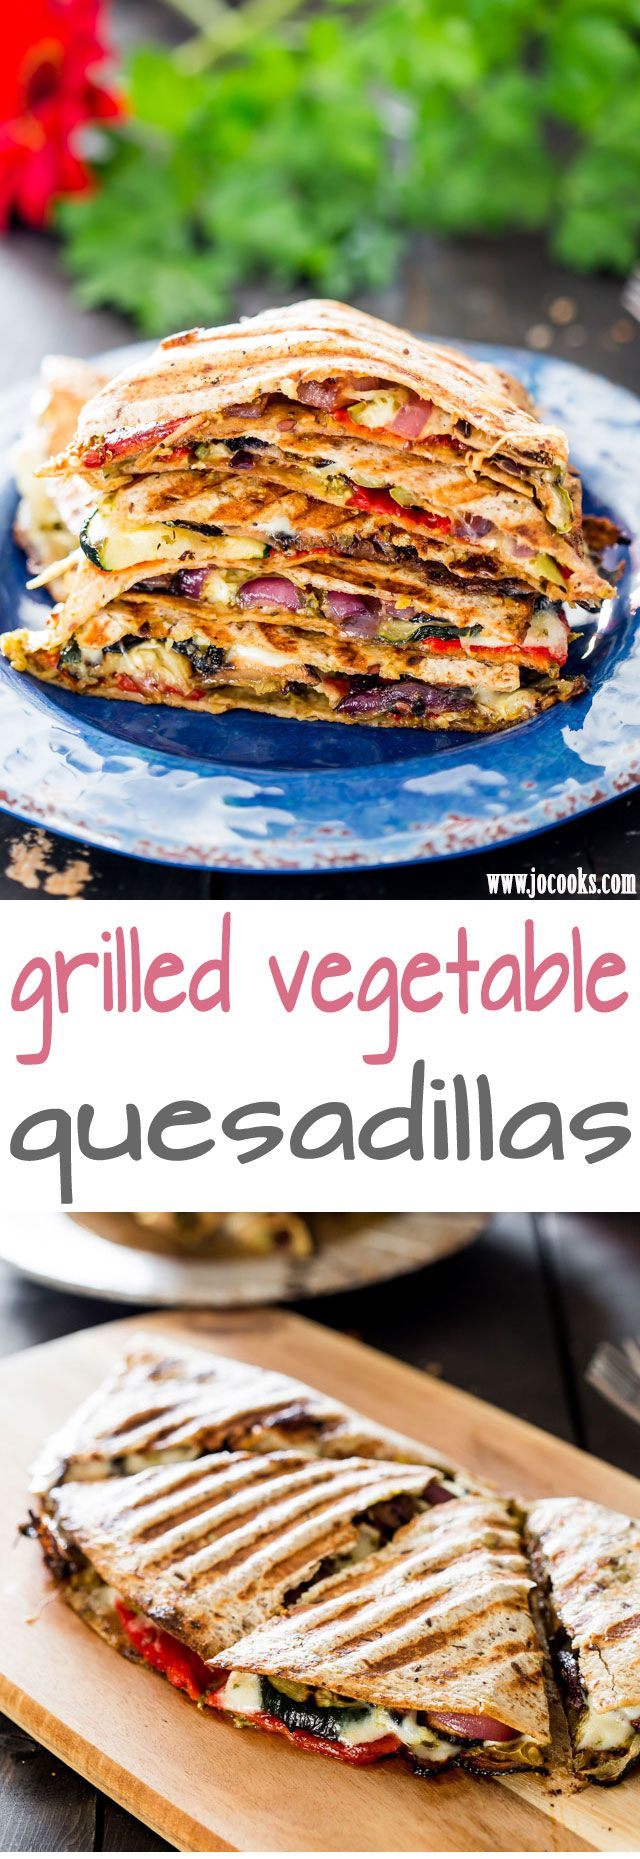 Grilled Vegetable Quesadillas with fresh mozzarella cheese and pesto - using fresh ingredients found at your local market, these quesadillas are perfect for a healthy lunch or dinner. #grillingrecipes